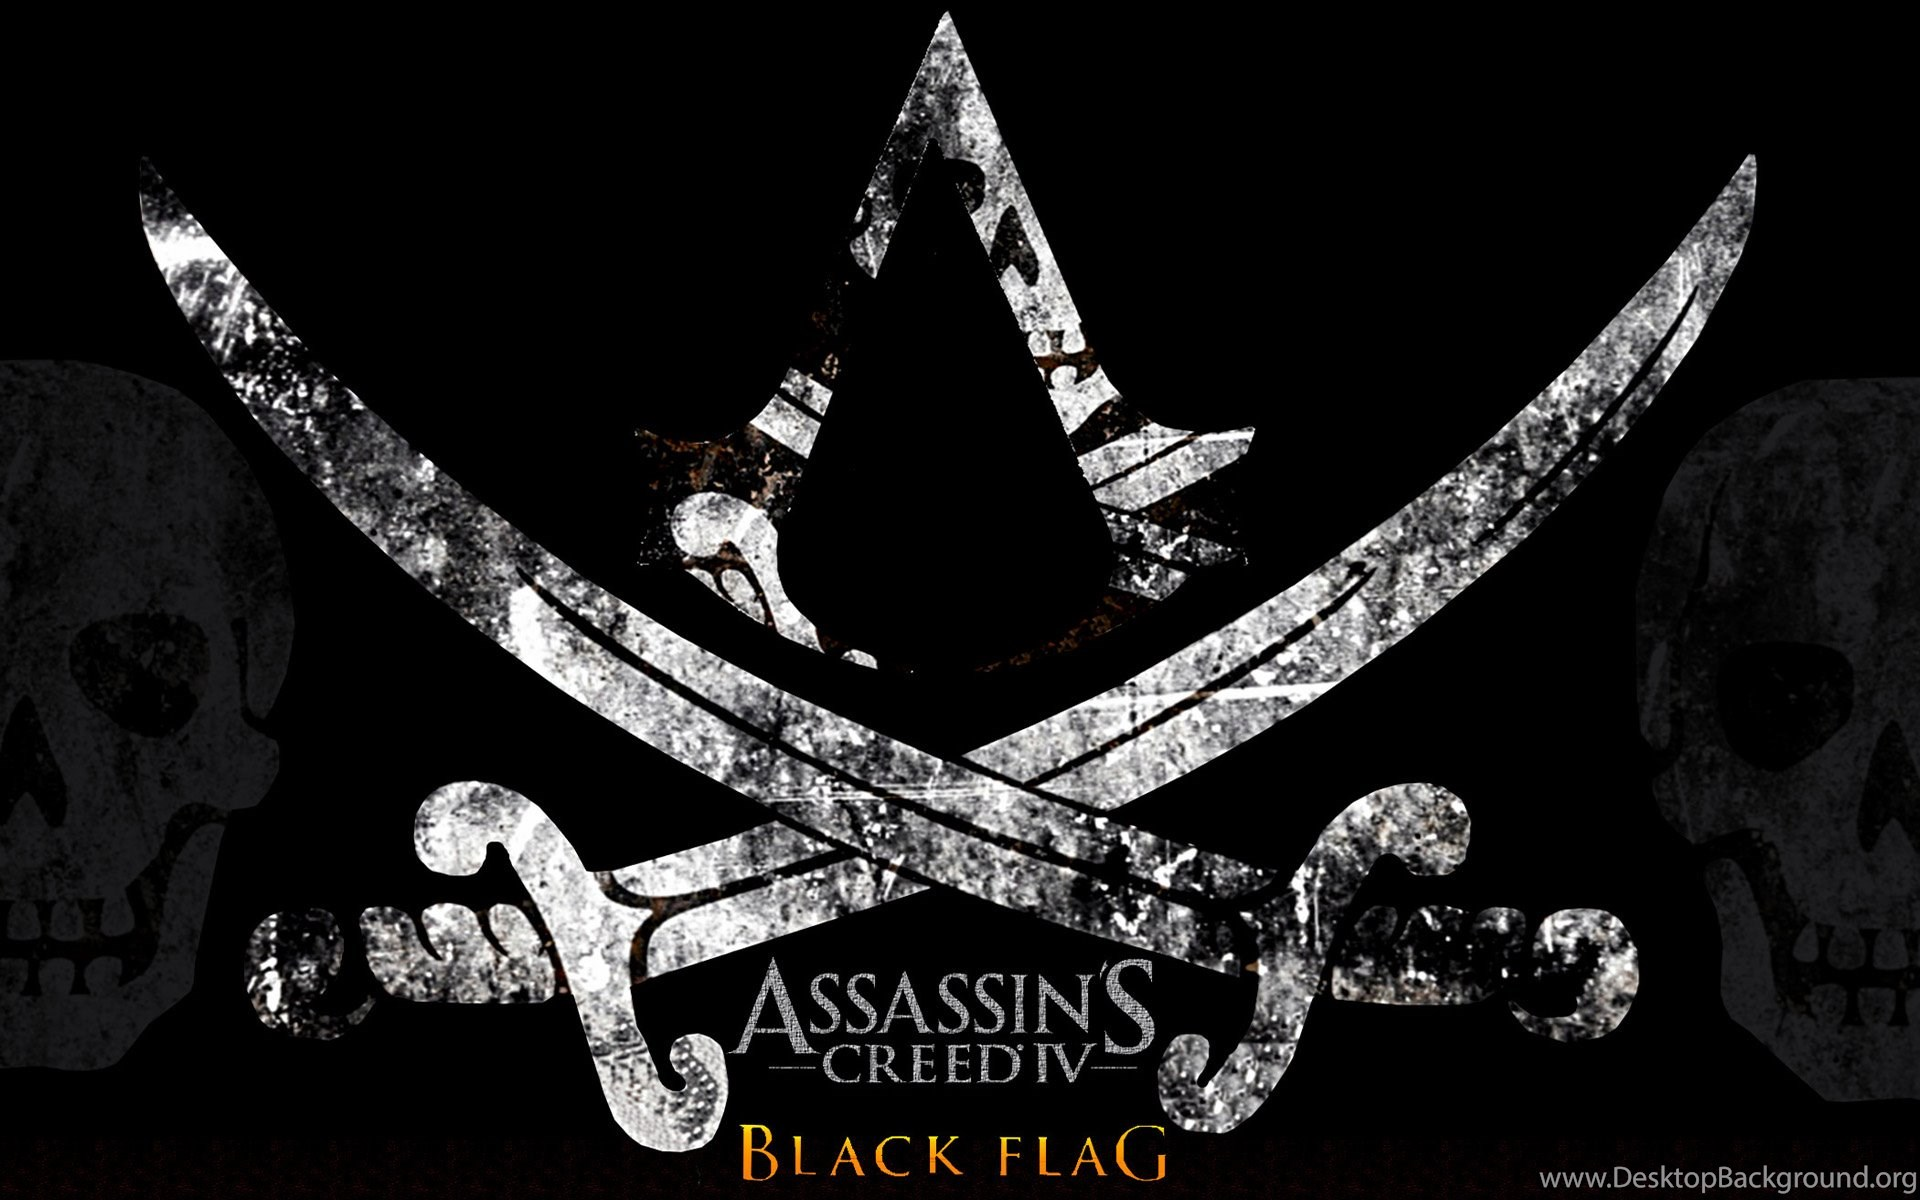 Assassins Creed Iv Black Flag Logo Wallpapers Desktop Background